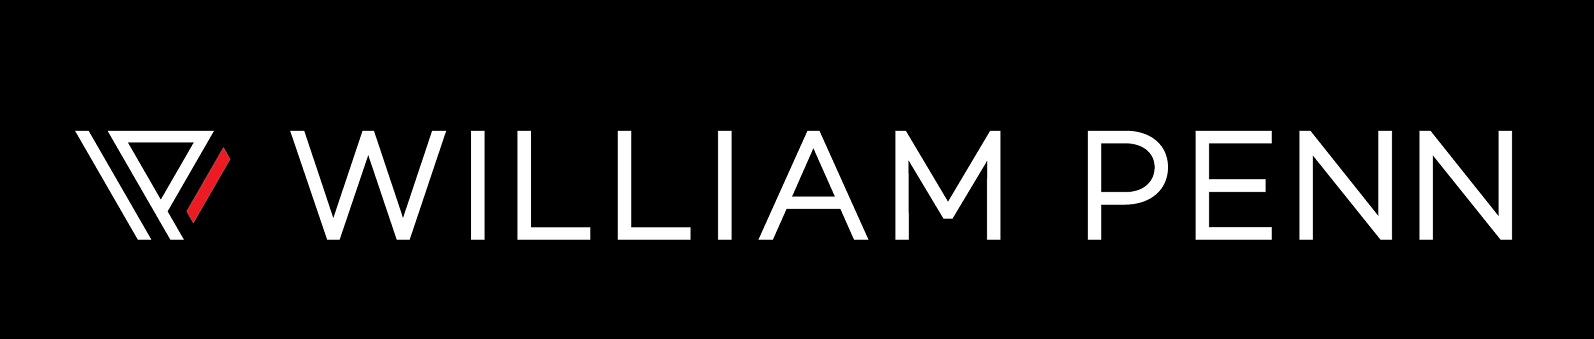 williampenn logo